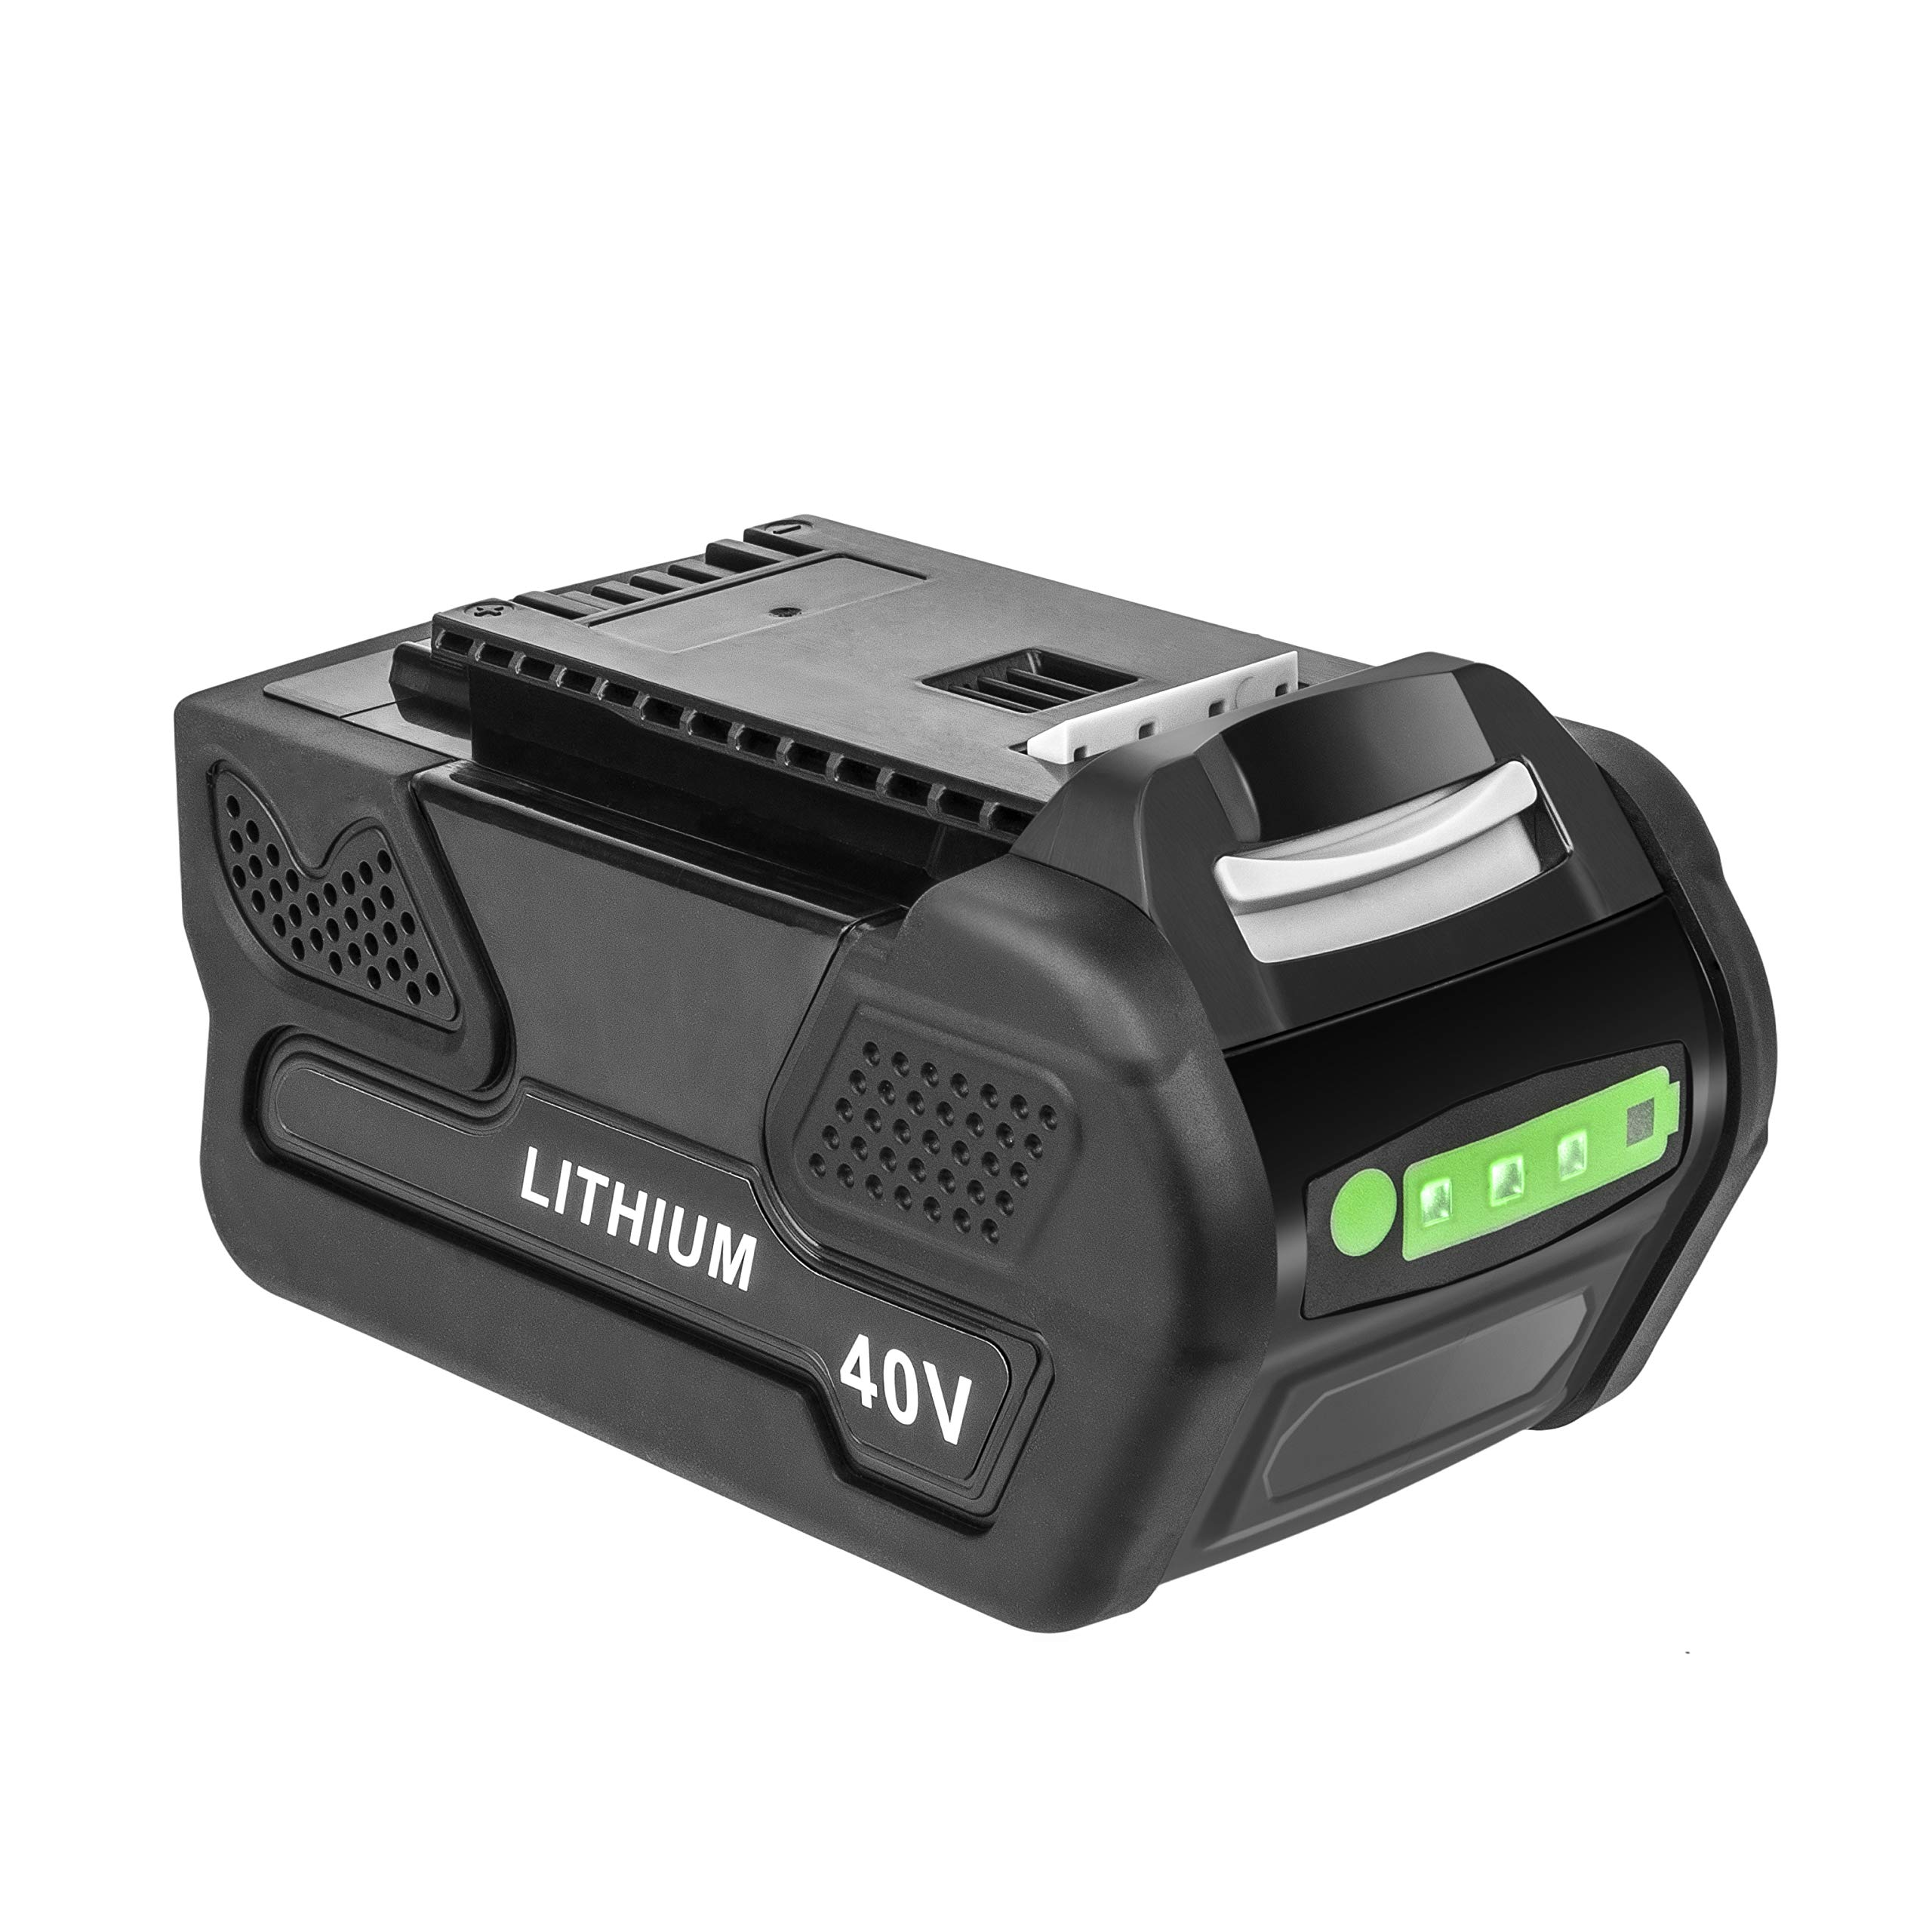 Cell9102 Replacement 40V 5000mAh Lithium-Ion Battery 29472 for GreenWorks 40V Battery G-MAX Power Tools 29252 20202 22262 25312 25322 20642 22272 27062 21242 by CELL9102